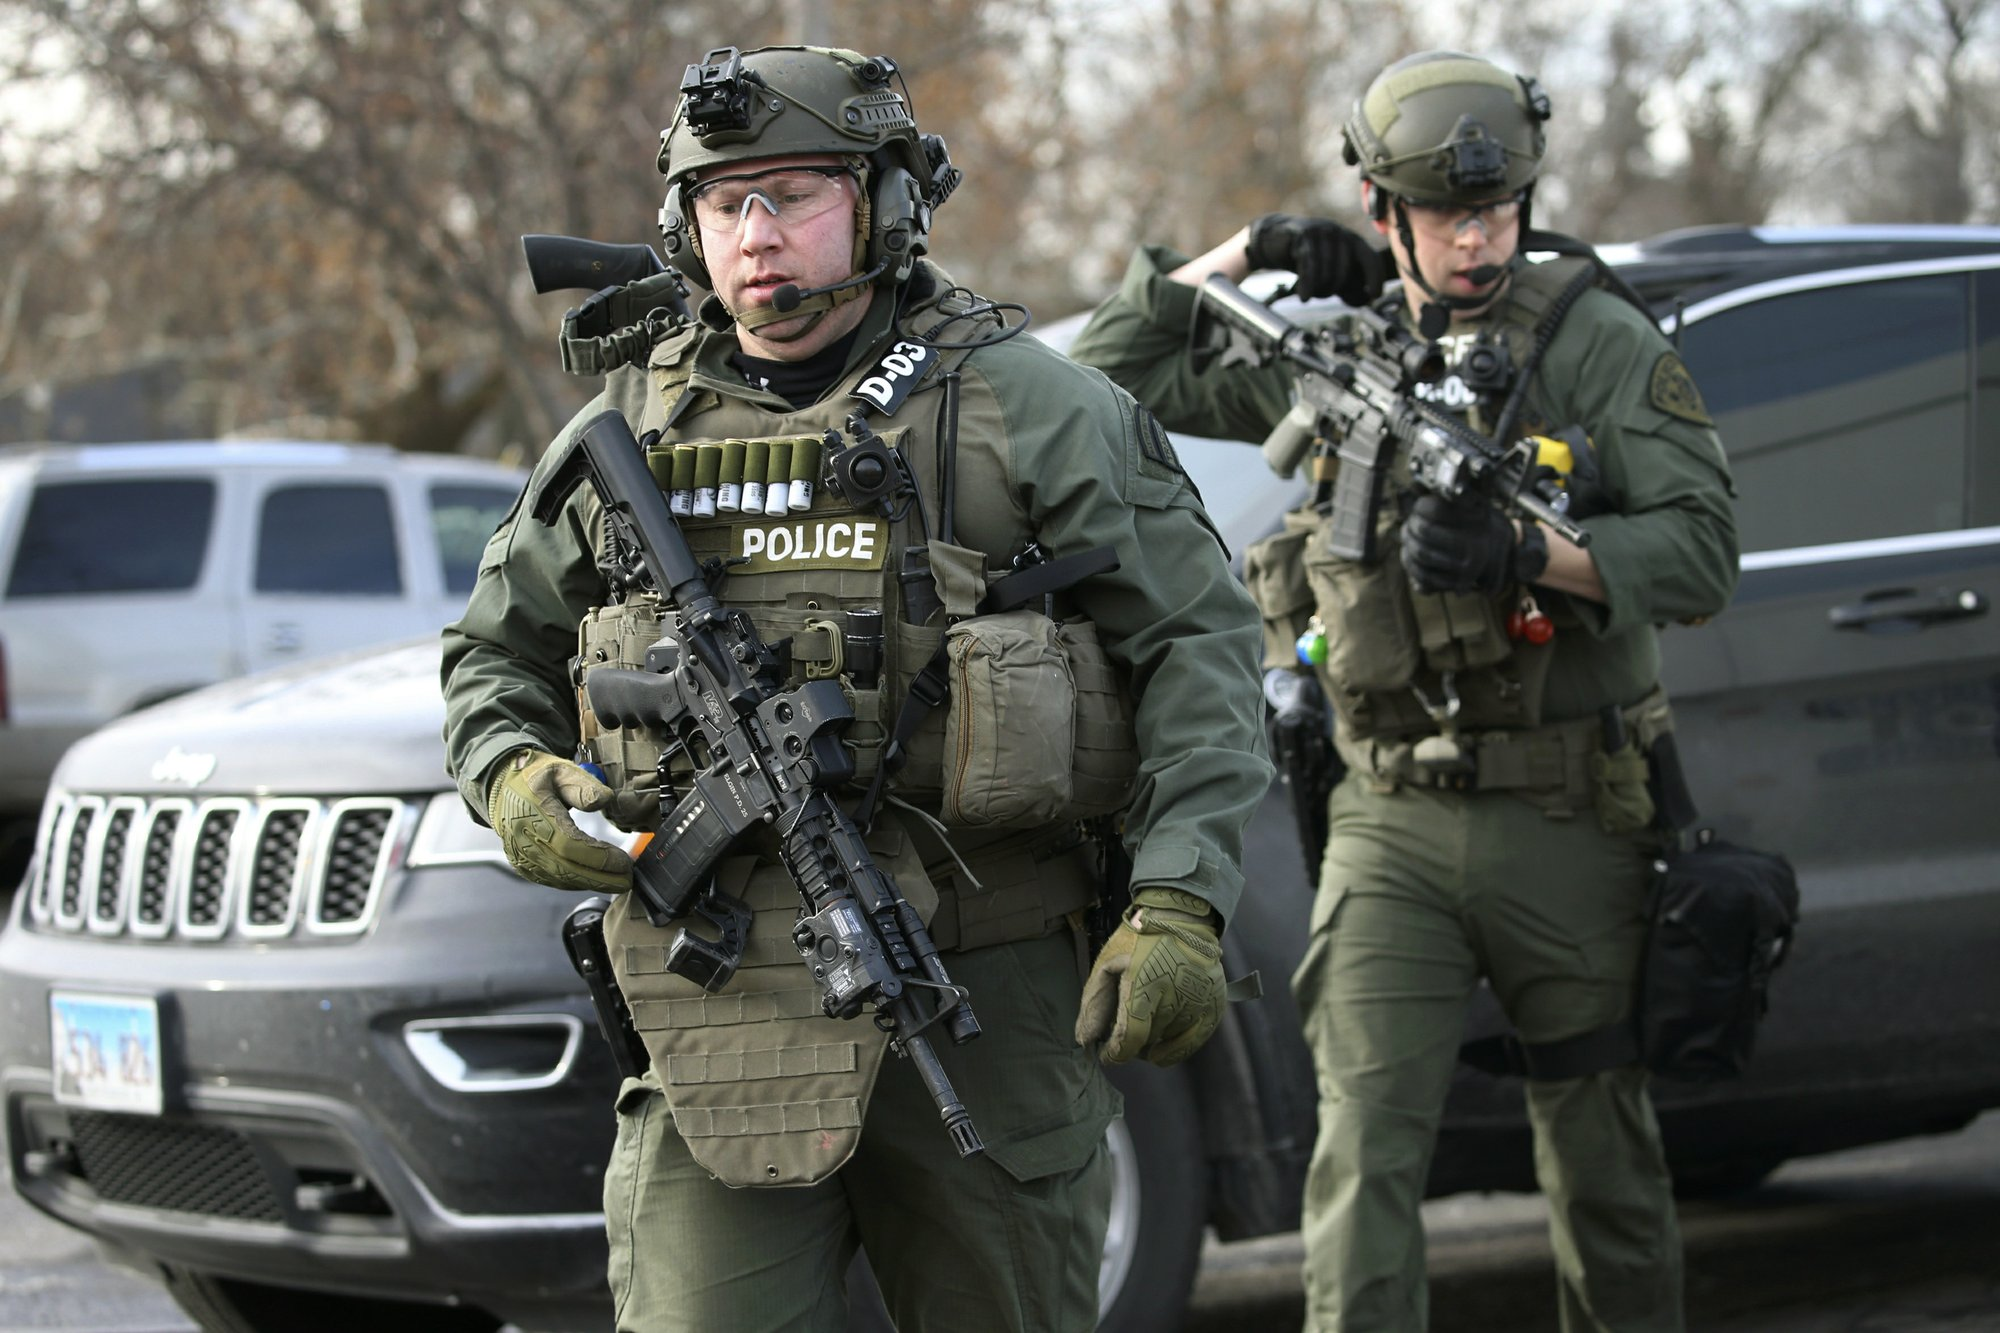 Gunman kills 5 people, wounds 5 police at Illinois business